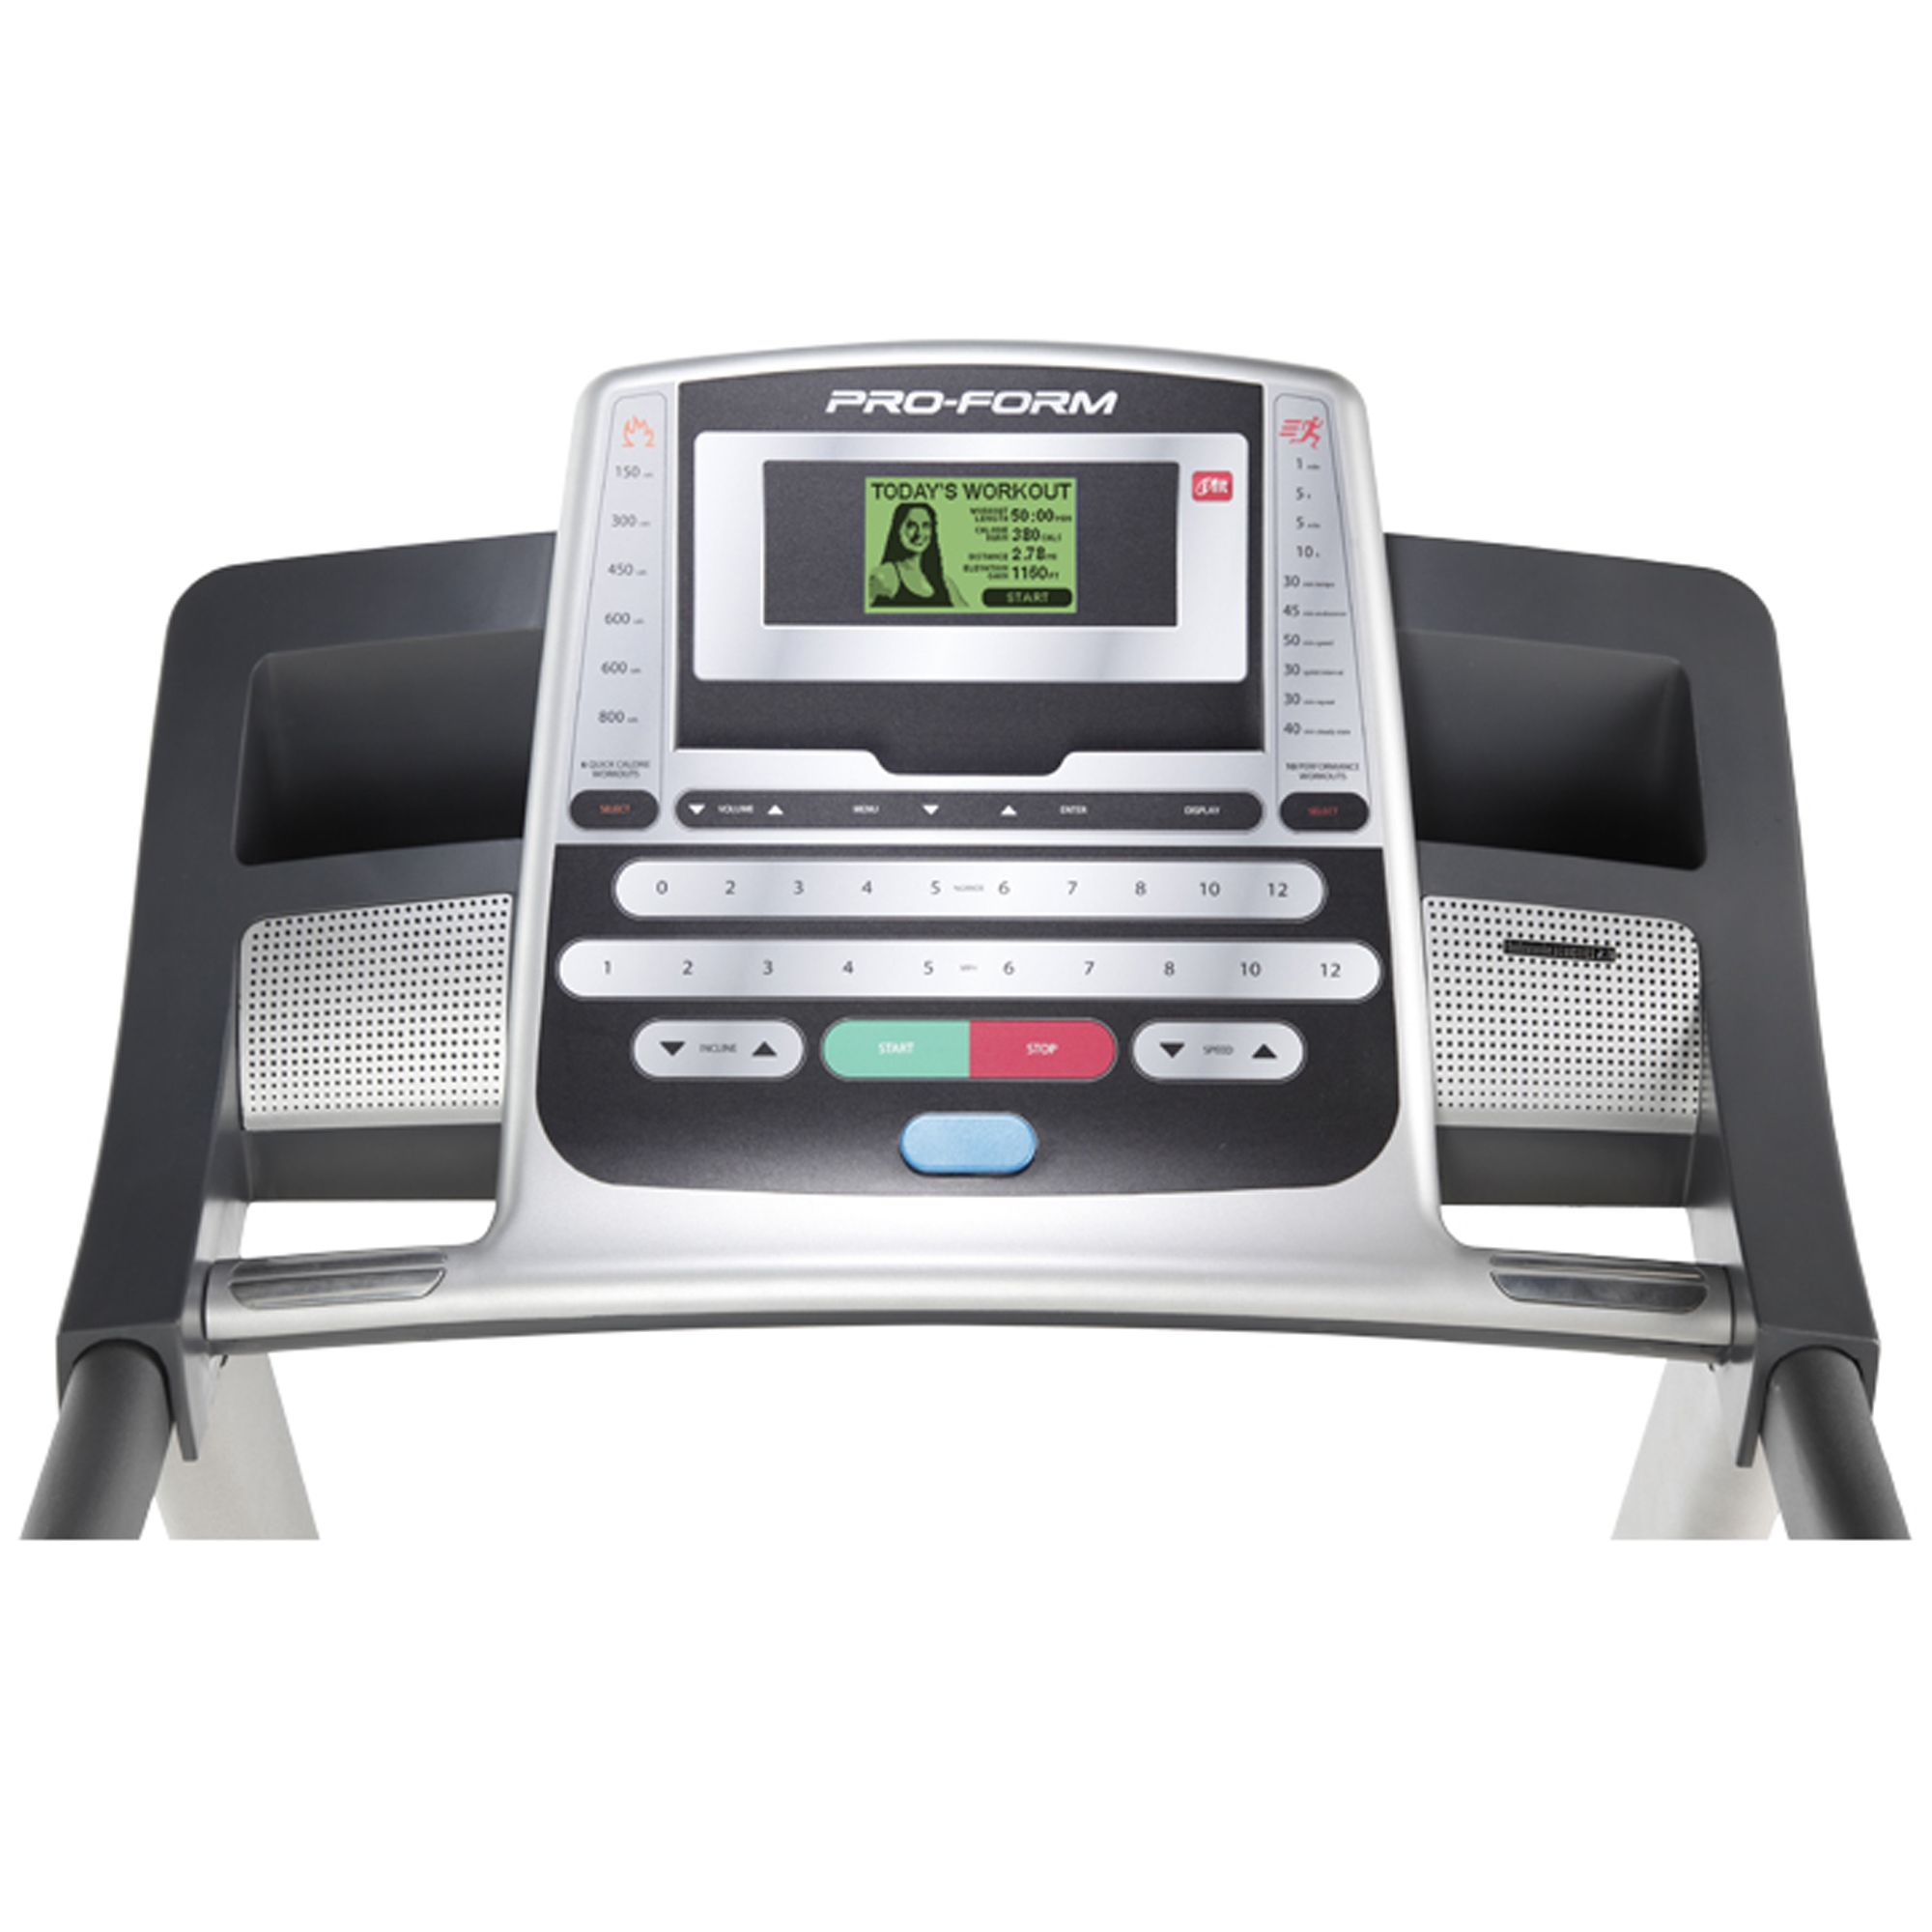 ProForm XP 690T Treadmill